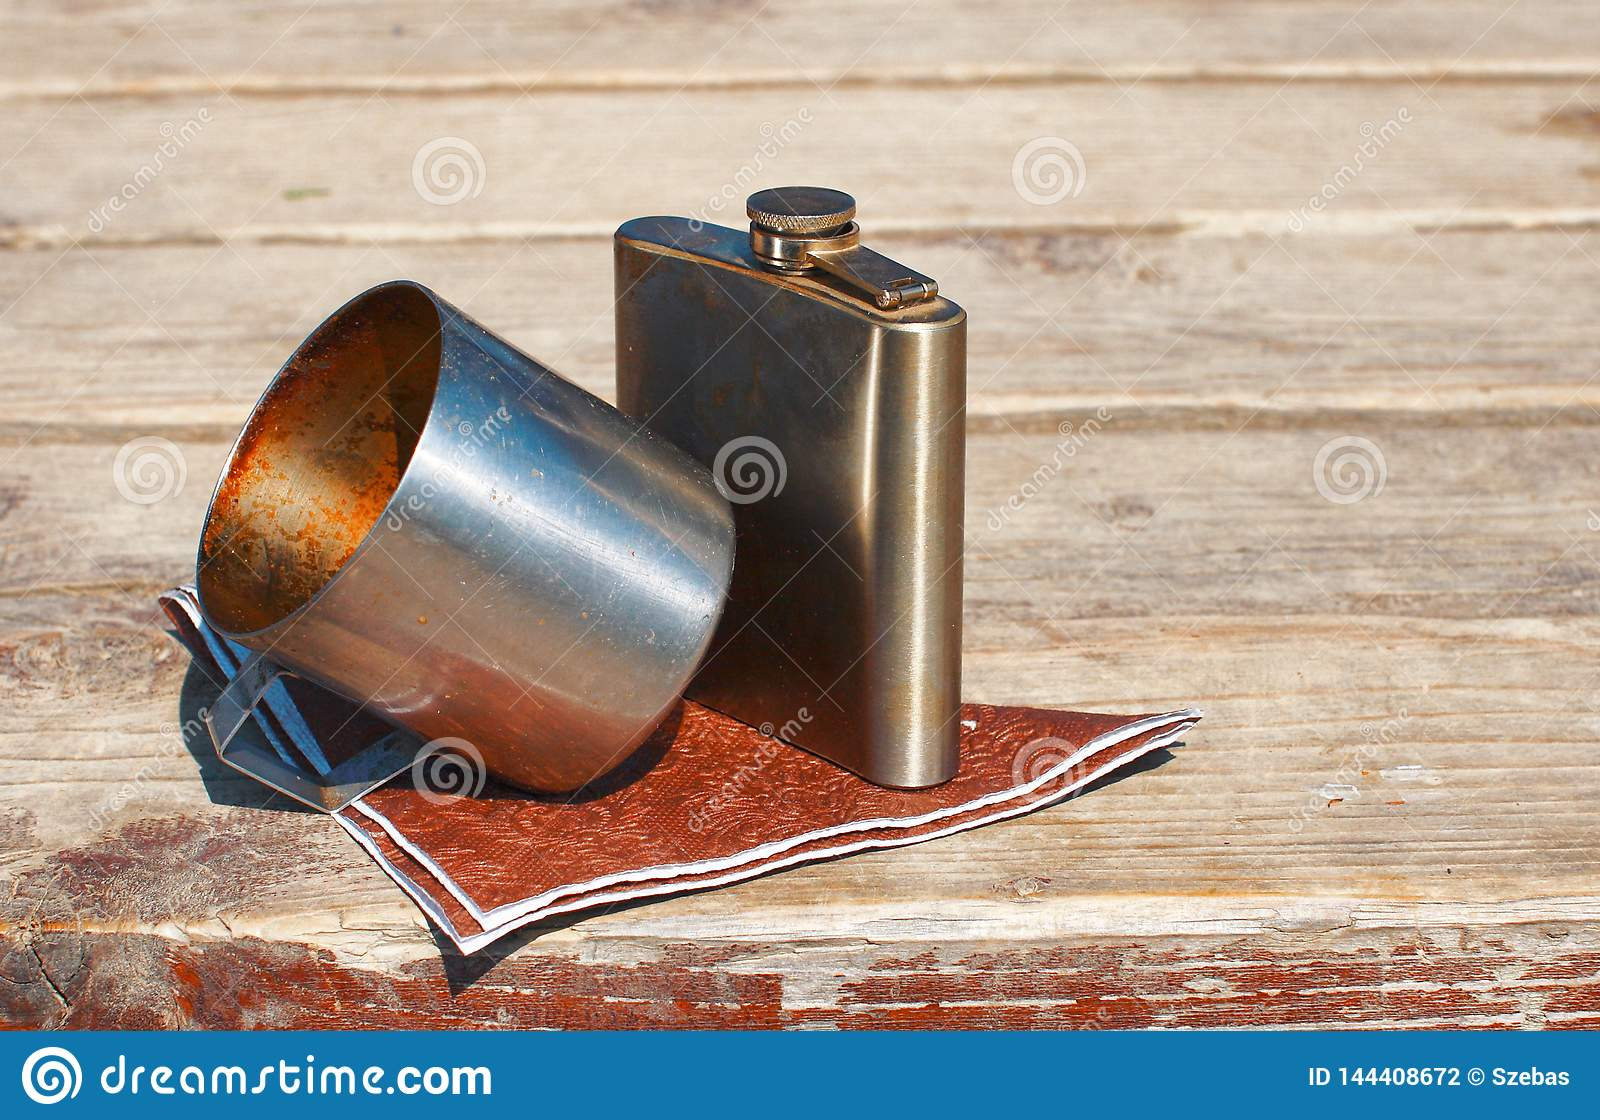 Drinking metal cup and flask